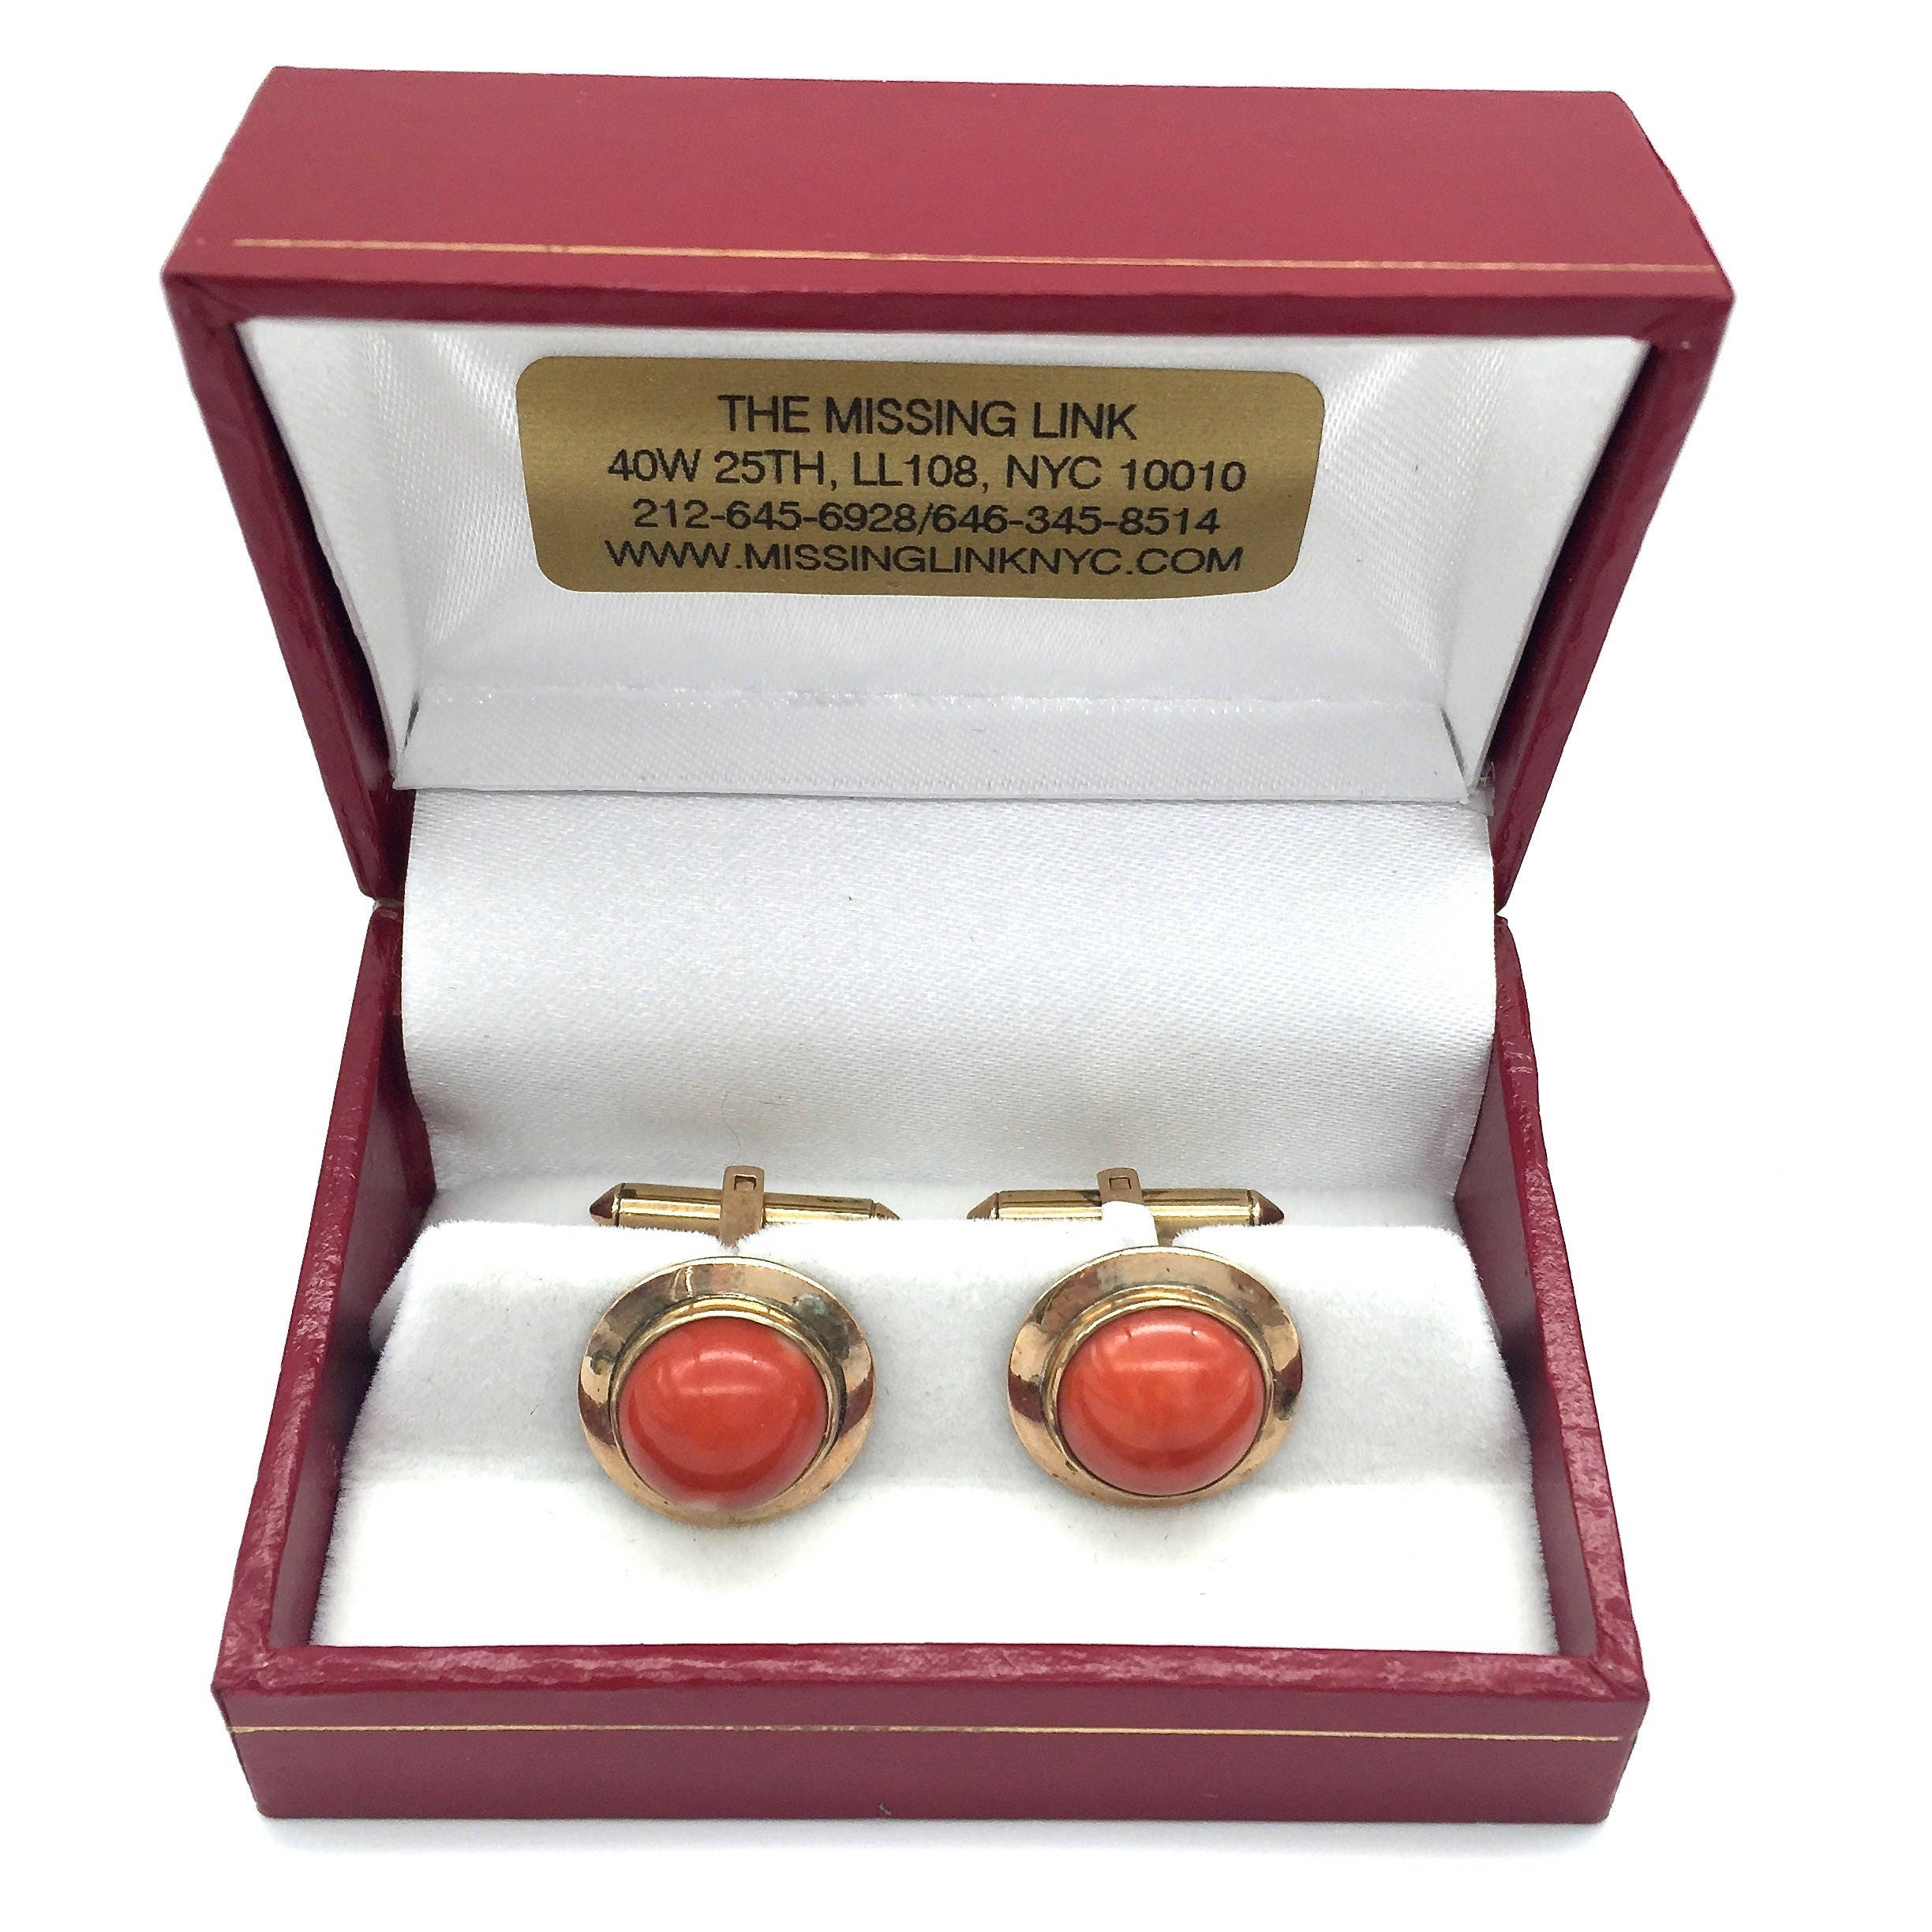 Vintage 14K Gold & Coral Cufflinks with Box Mens Gifts, Wedding ...